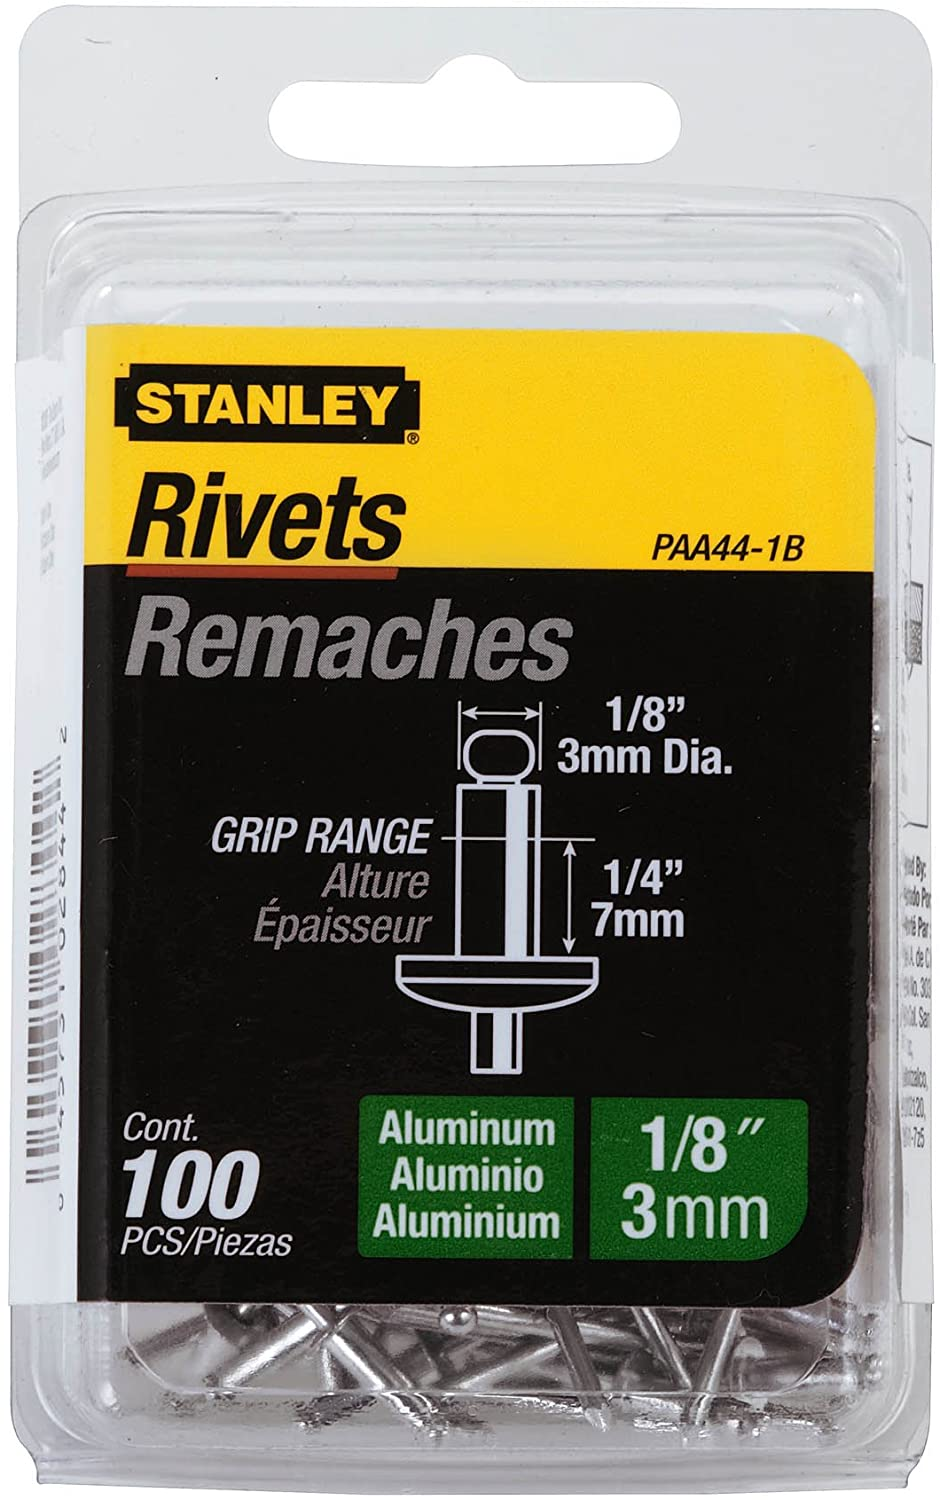 Stanley Paa44-1B 1/8 Inch X 1/4 Inch Aluminum Rivets,Pack of 100(Pack of 100)